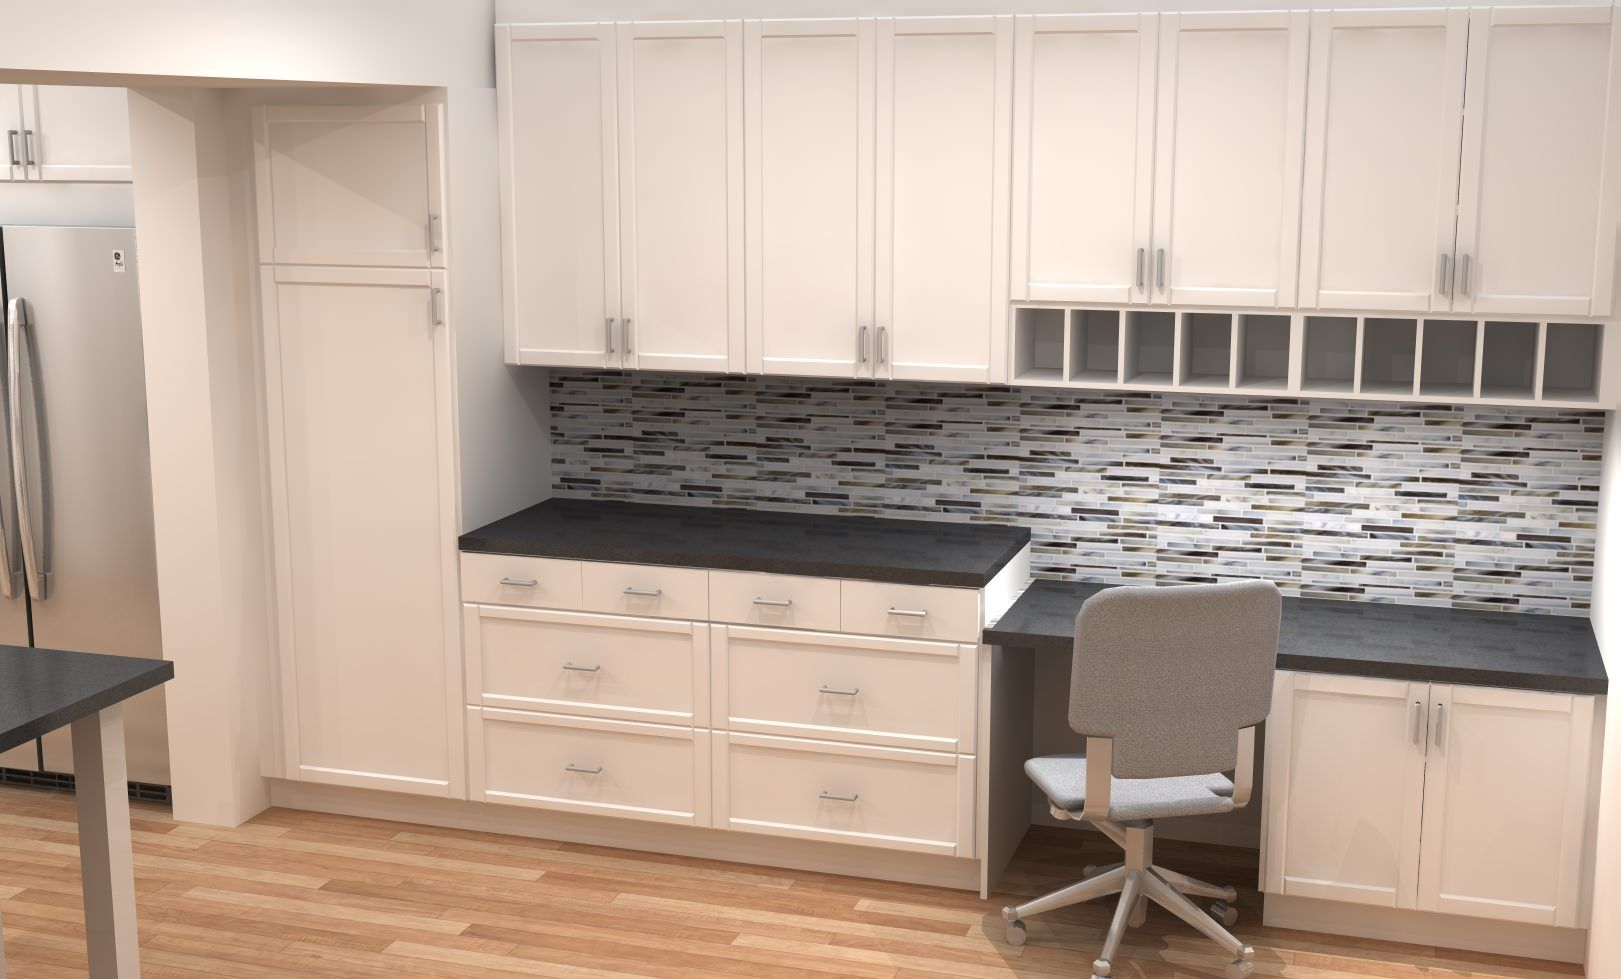 Kitchen Cabinets As Office Furniture Ikea Kitchen Design Kitchen Cabinets On A Budget Kitchen Remodel Small